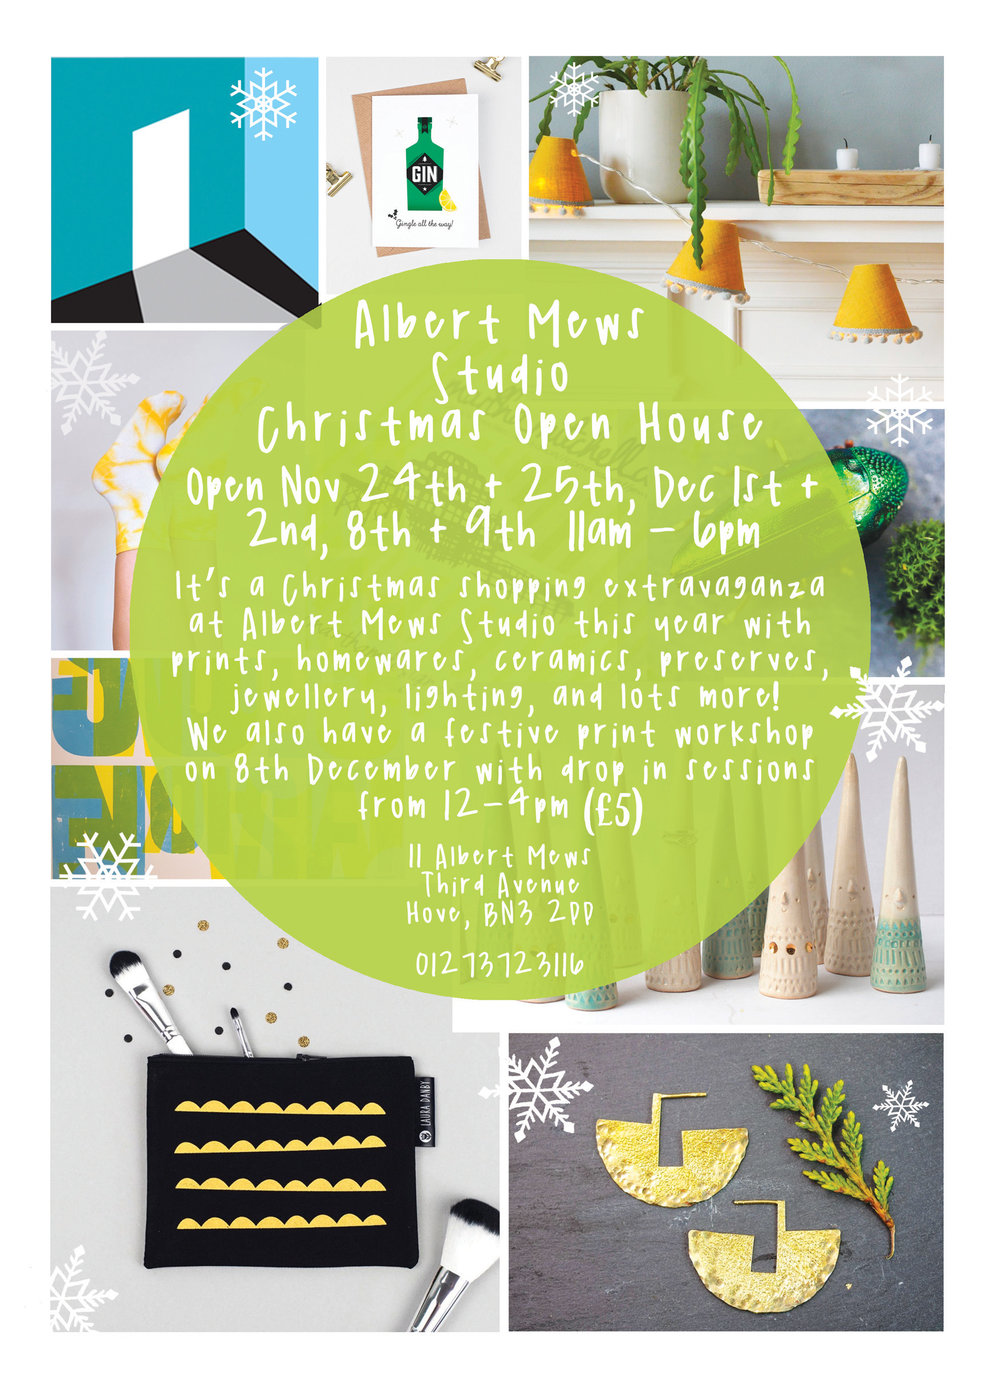 Albert Mews Studio Christmas Open House 2018 - Flyer Back.jpg